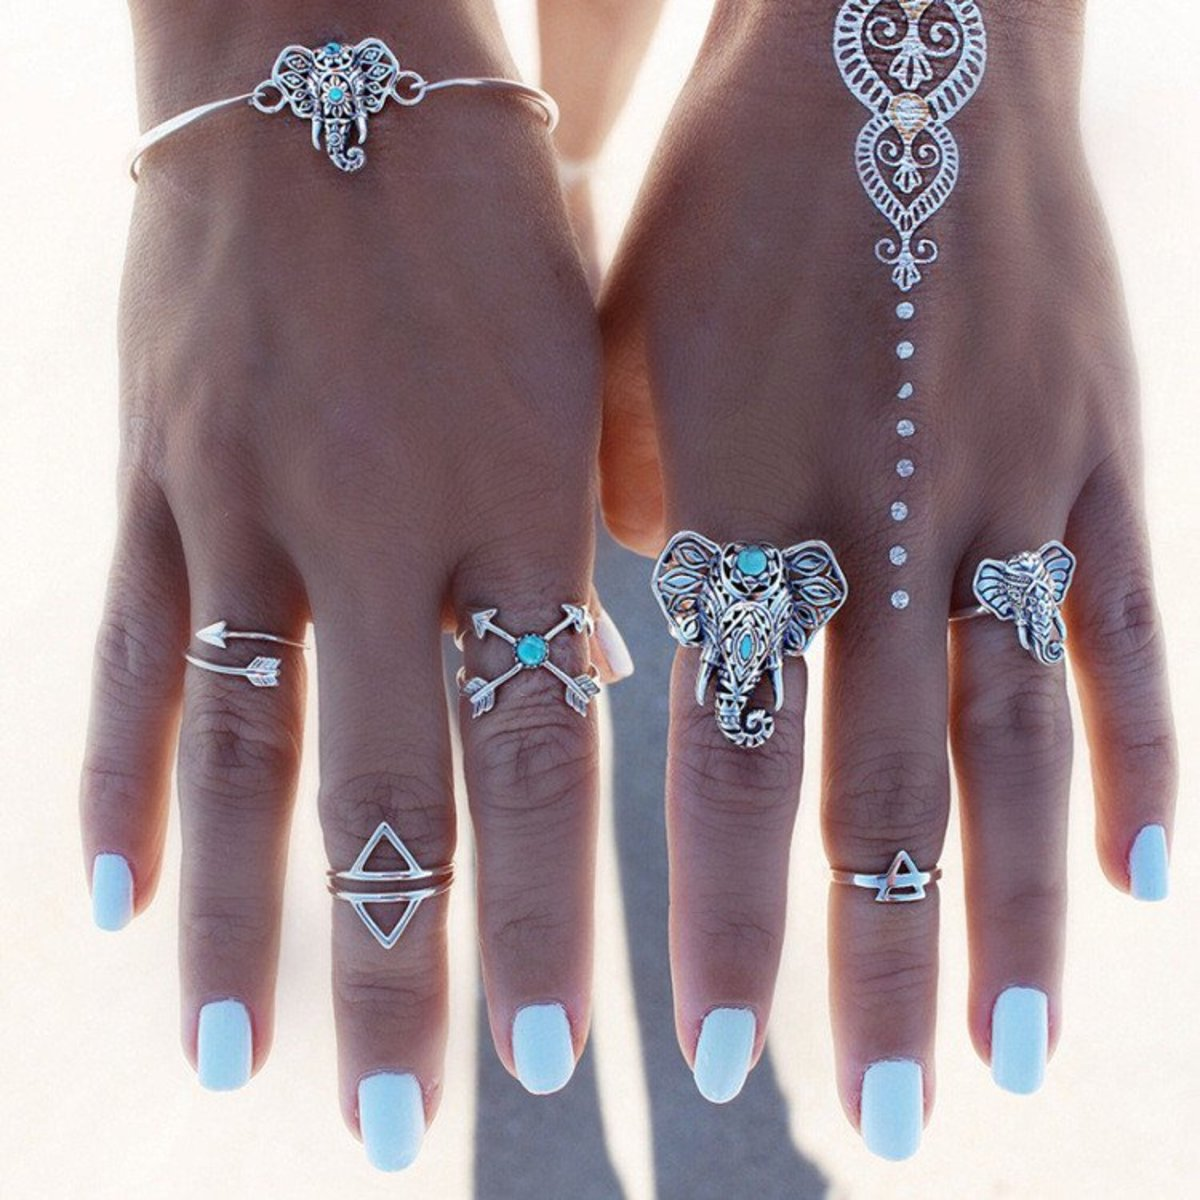 Midi rings complement regular rings quite well and can be worn with anything.